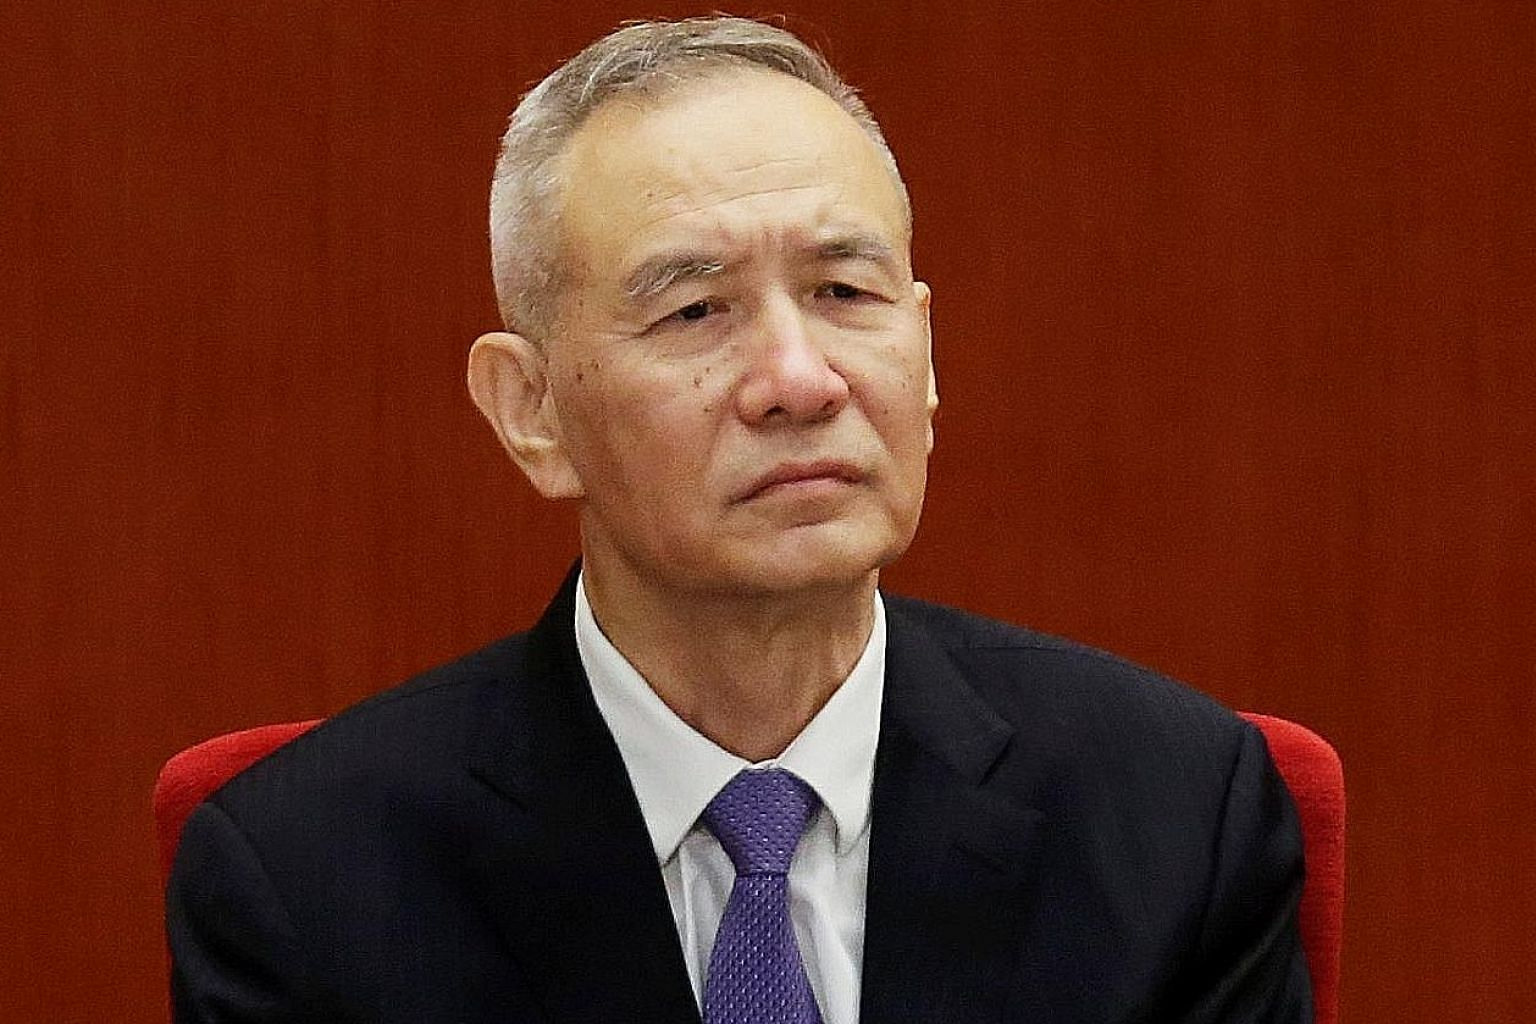 Observers said the appearance of Chinese Vice-Premier Liu He on the first day of what were supposed to be vice-ministerial-level talks was a clear sign of the importance the leadership was attaching to the talks.